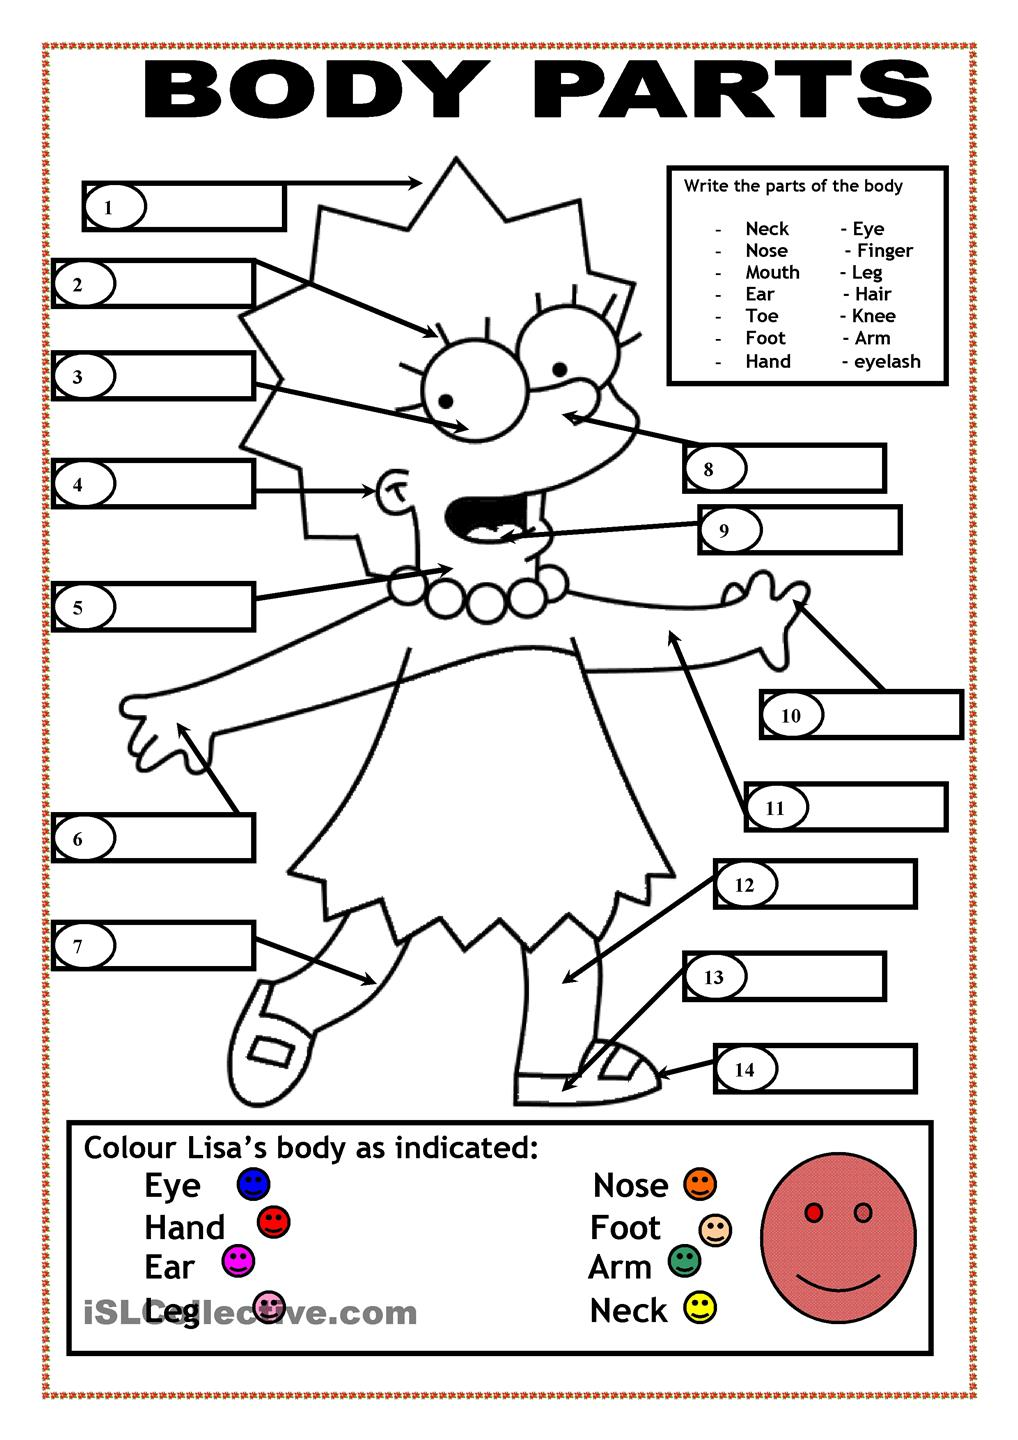 body parts coloring page for kids